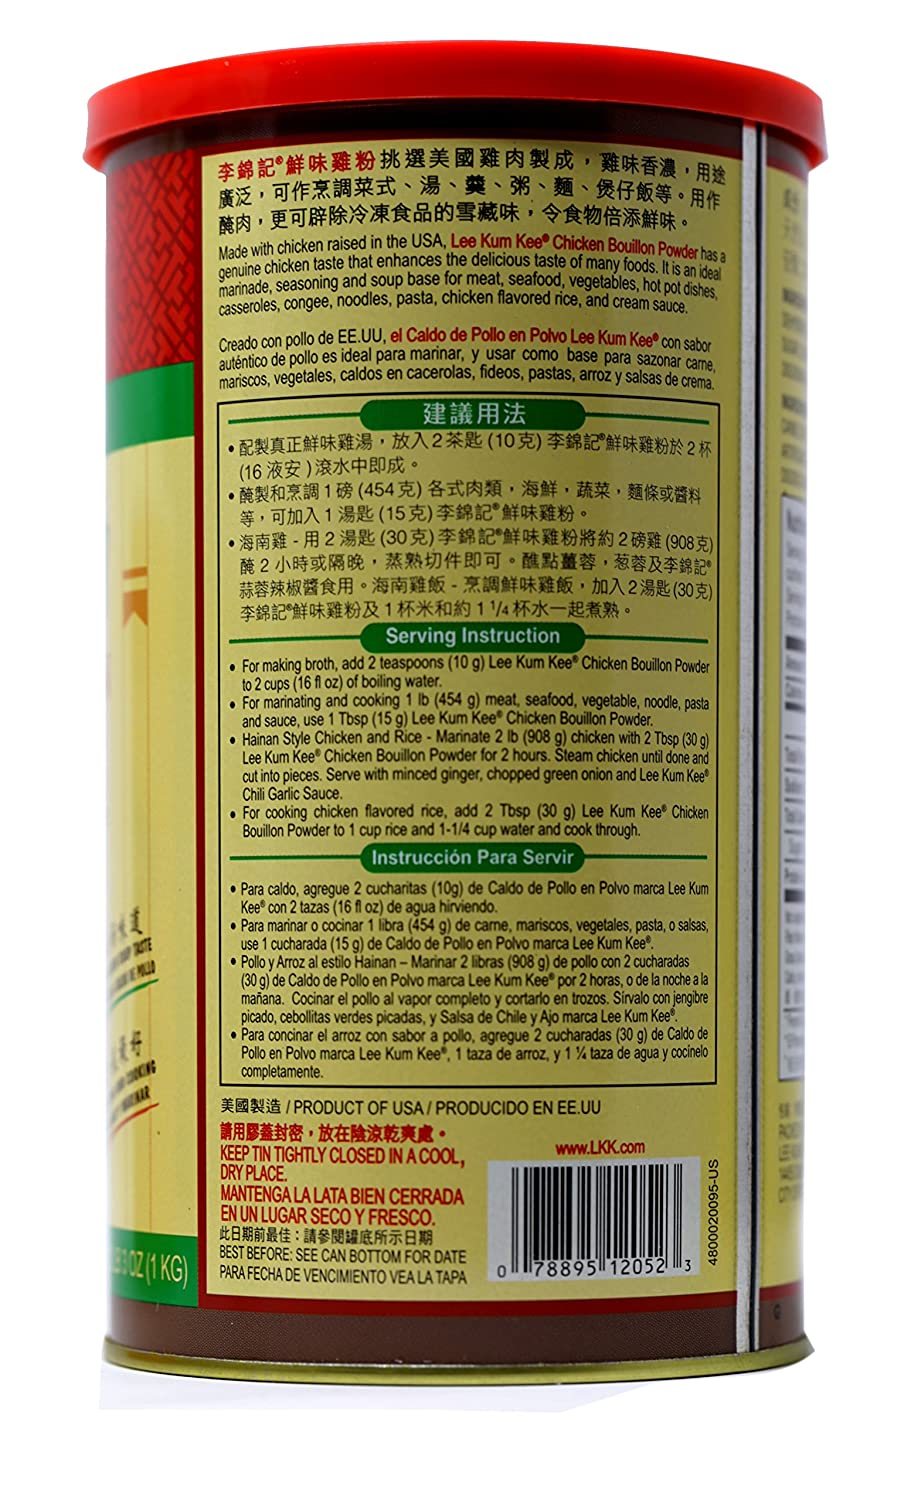 Amazon.com : Lee Kum Kee Chicken Bouillon Powder 35OZ (2 Pack) : Grocery & Gourmet Food